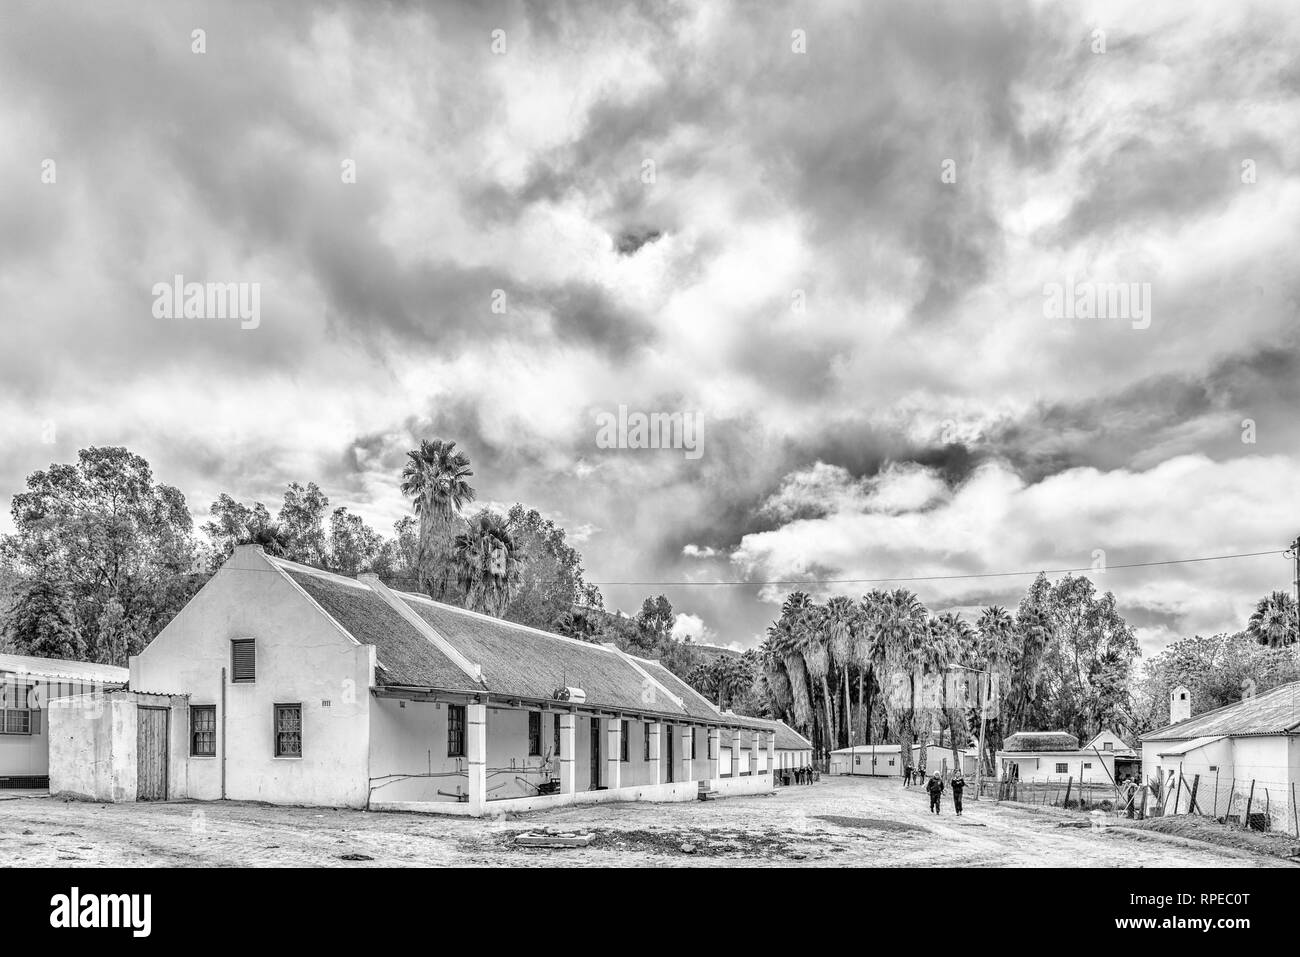 WUPPERTHAL, SOUTH AFRICA, AUGUST 27, 2018: A street scene, with historic buildings and people, in Wupperthal in the Cederberg Mountains of the Western - Stock Image